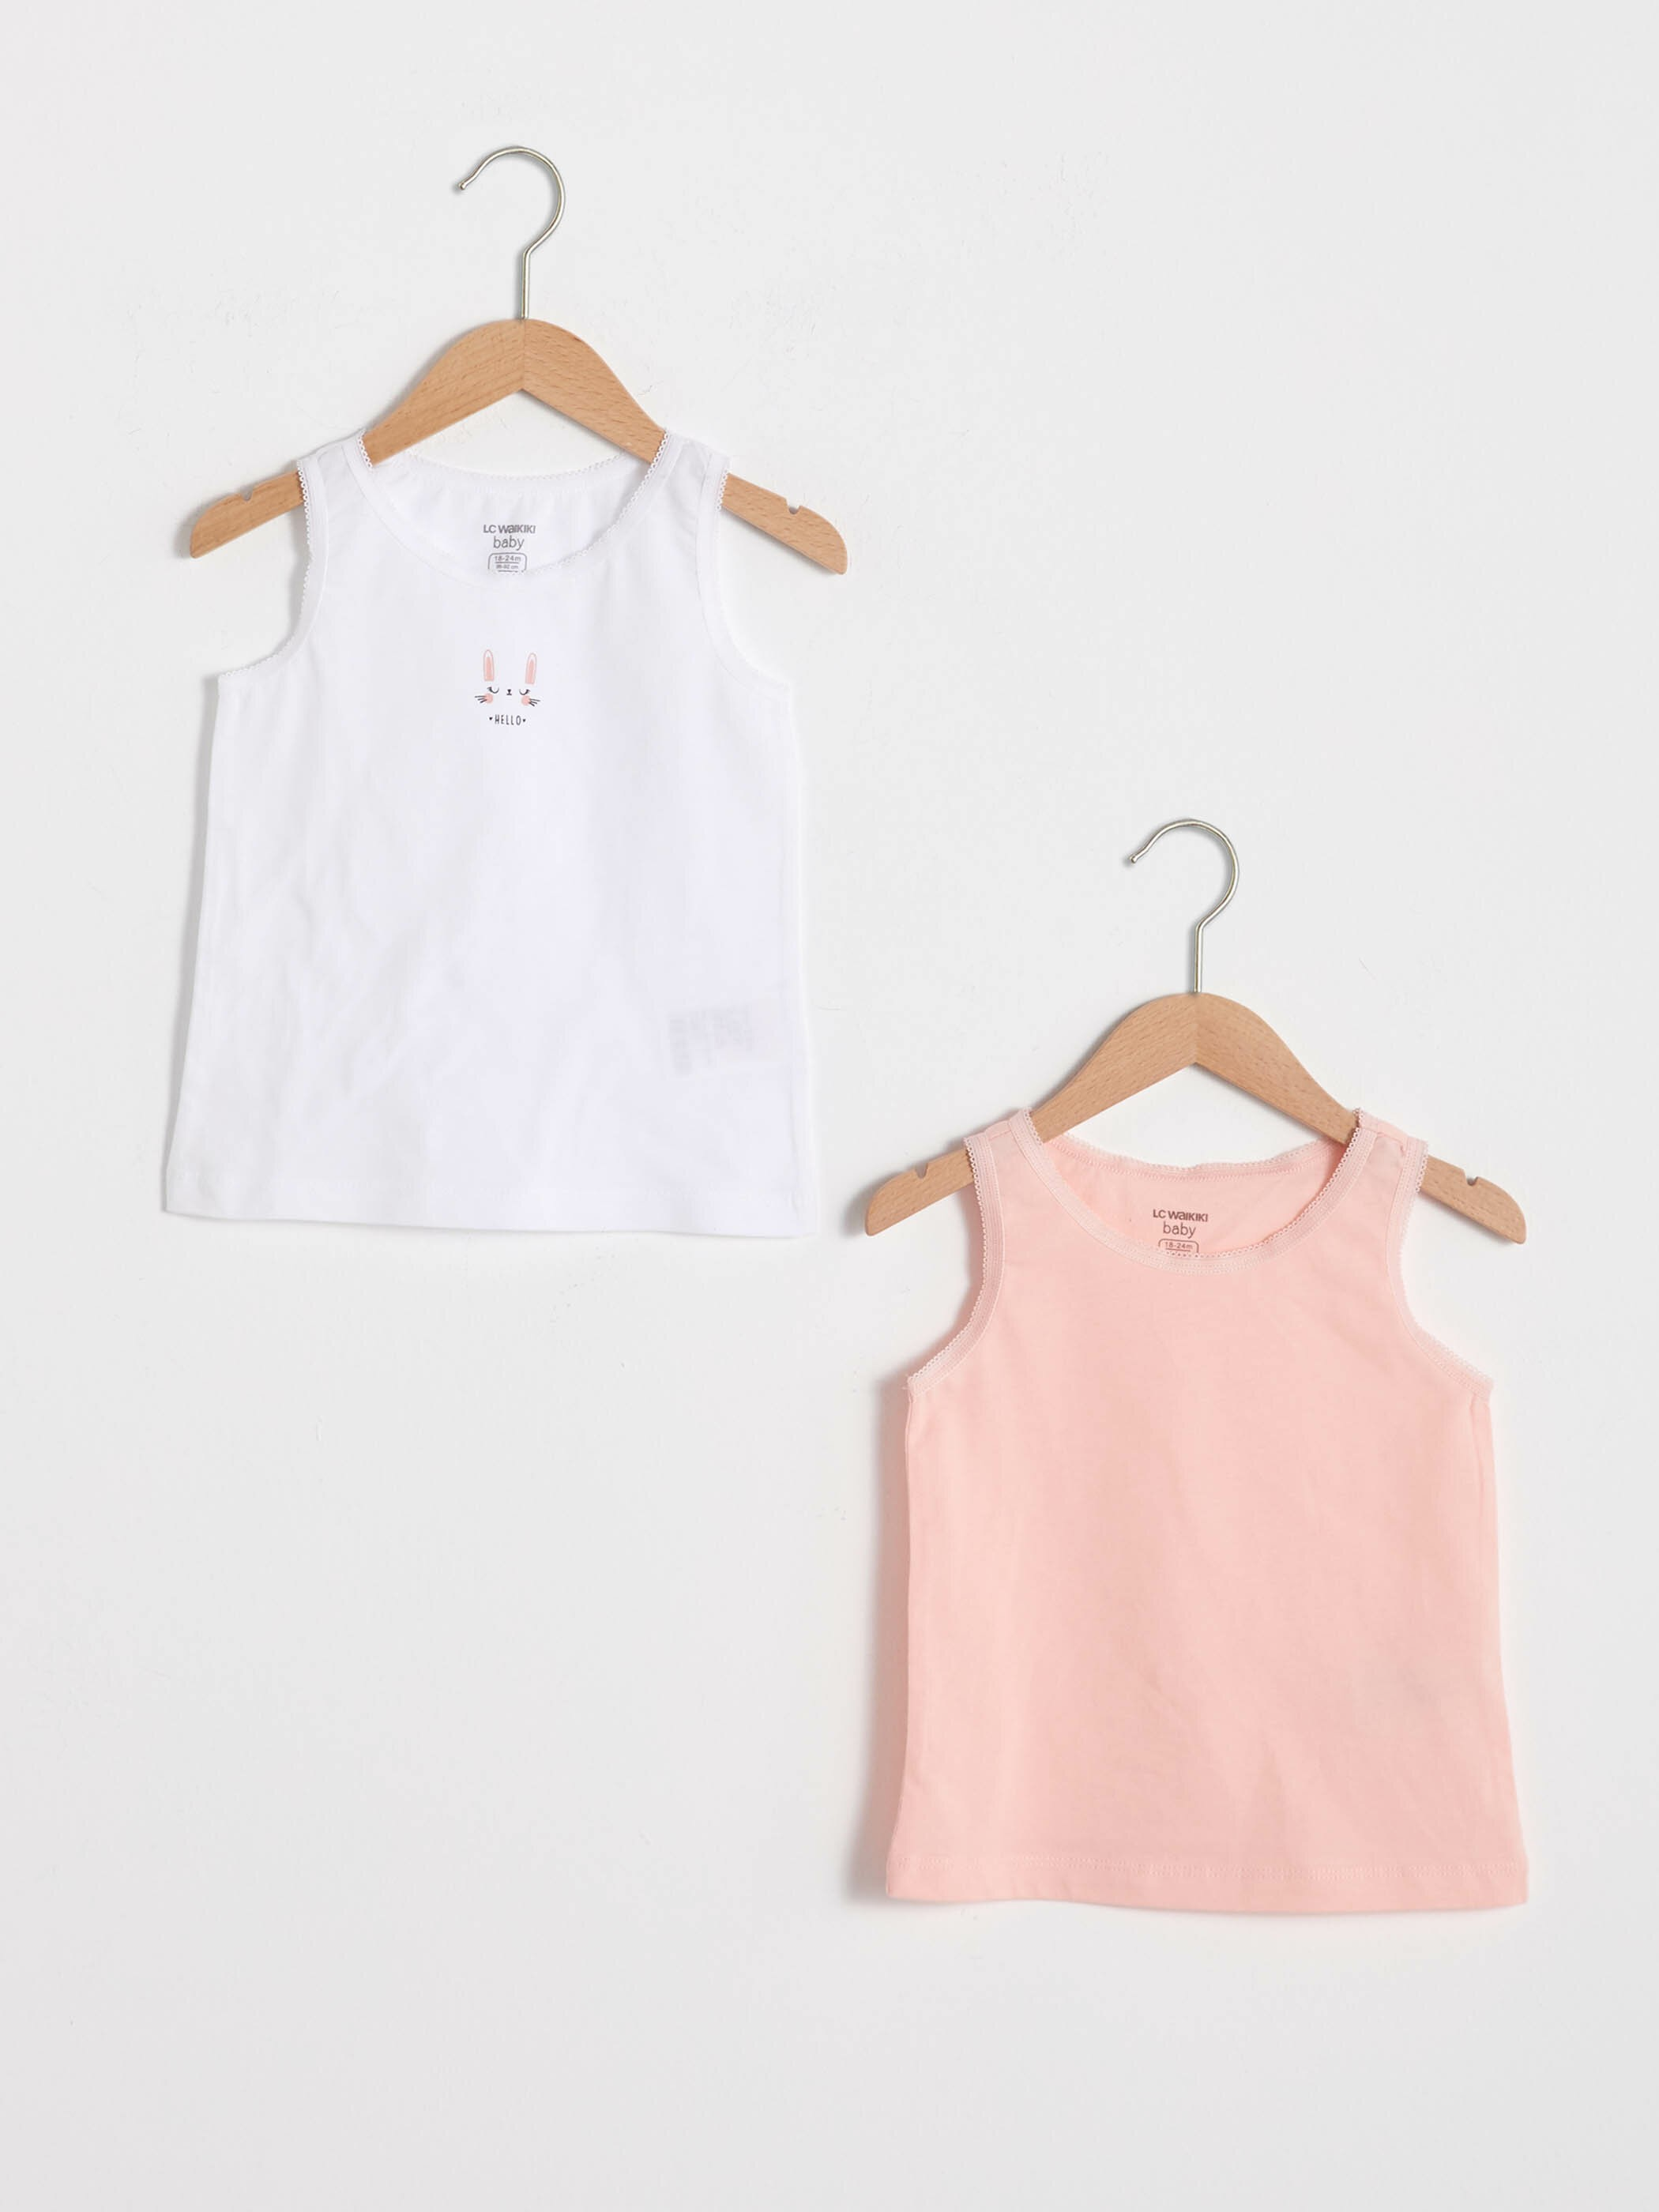 PINK - 2-pack Baby Girl's Tank Top - S13193Z1